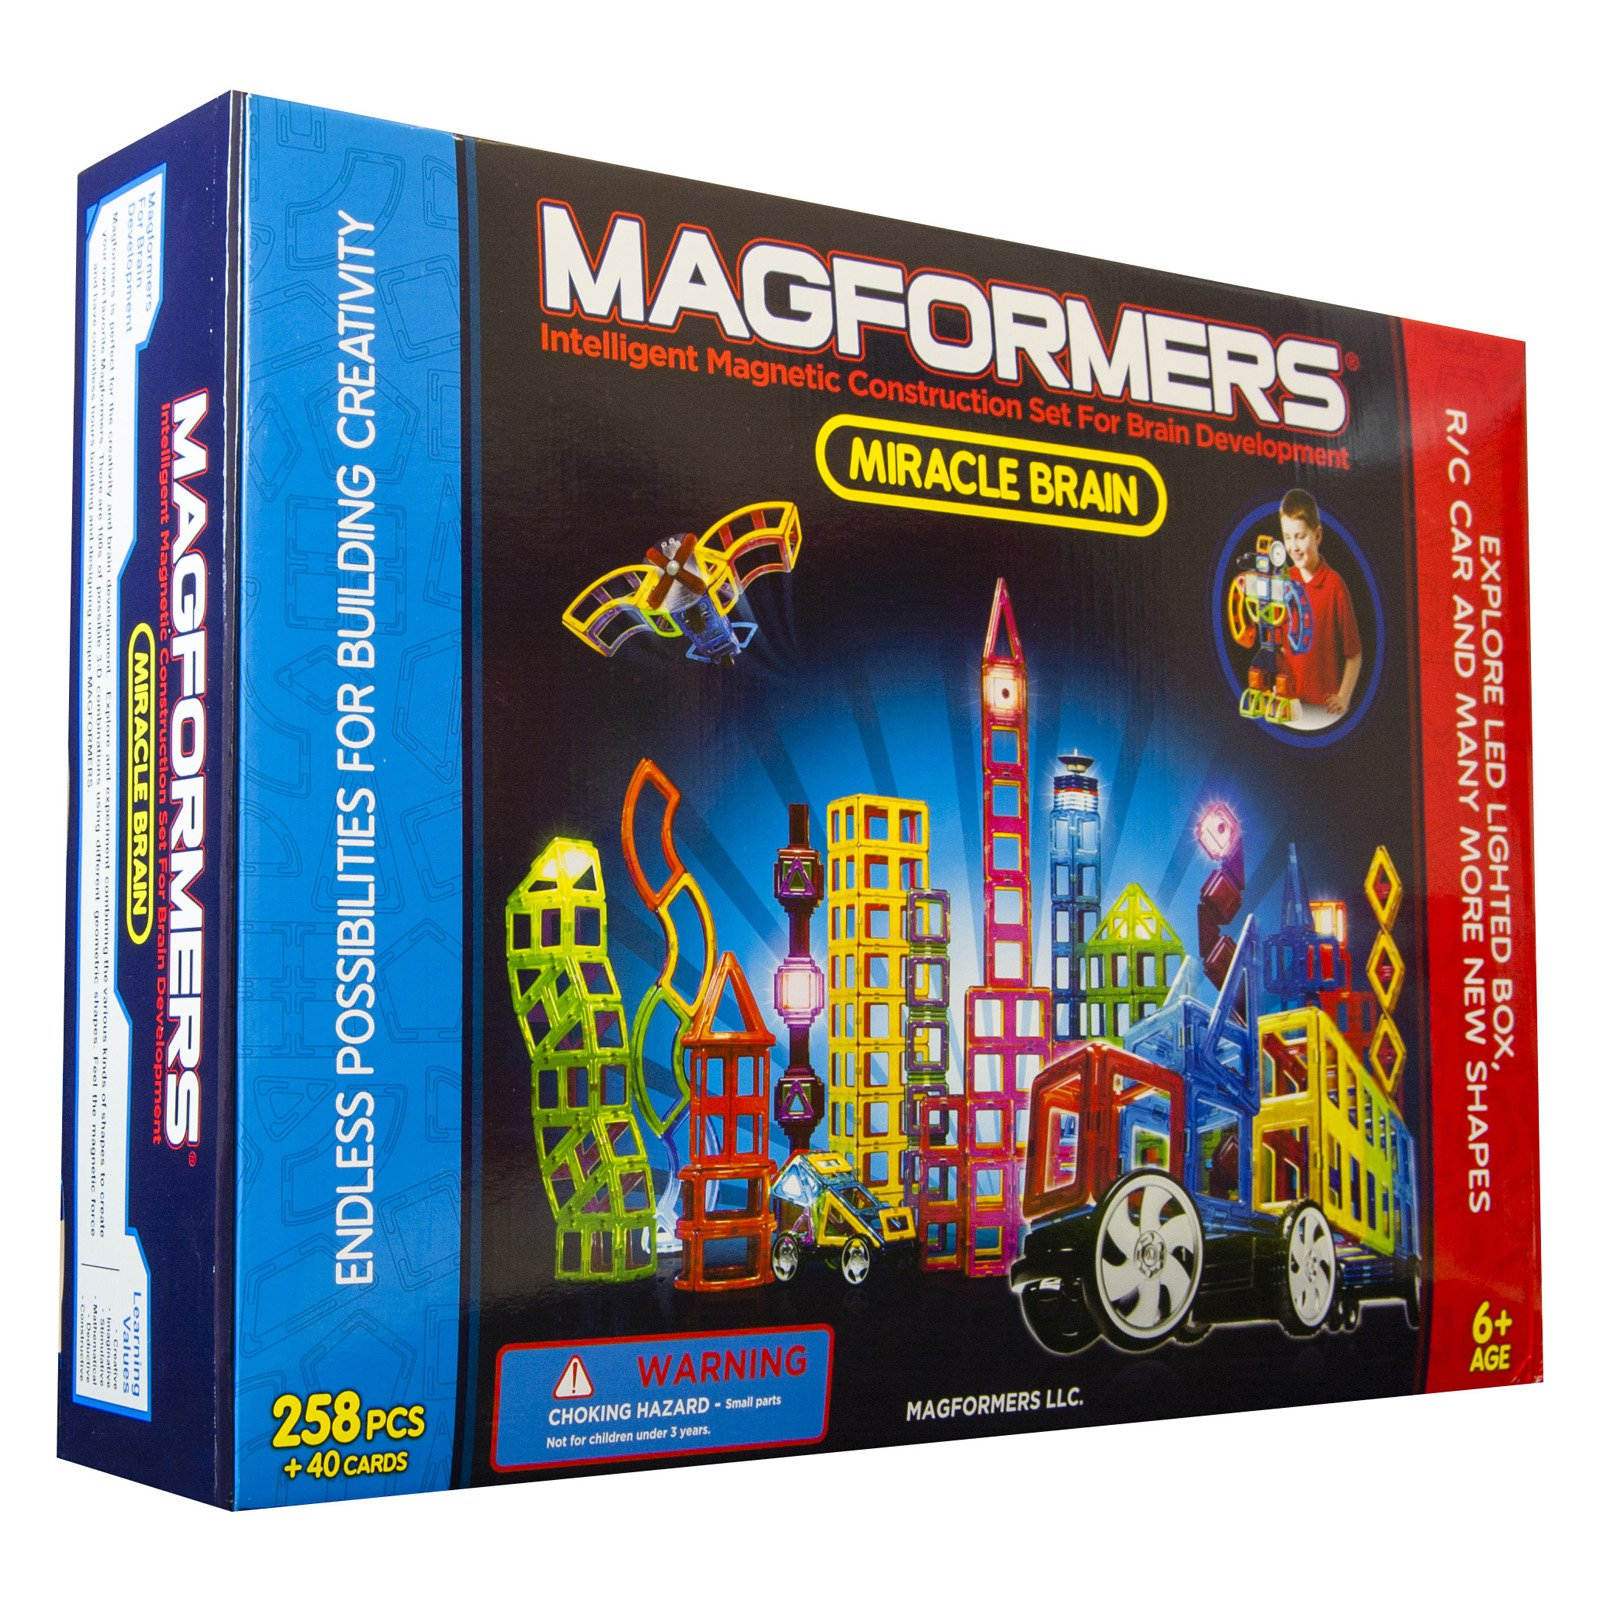 MAGFORMERS Miracle Brain 298-Piece Magnetic Construction Set